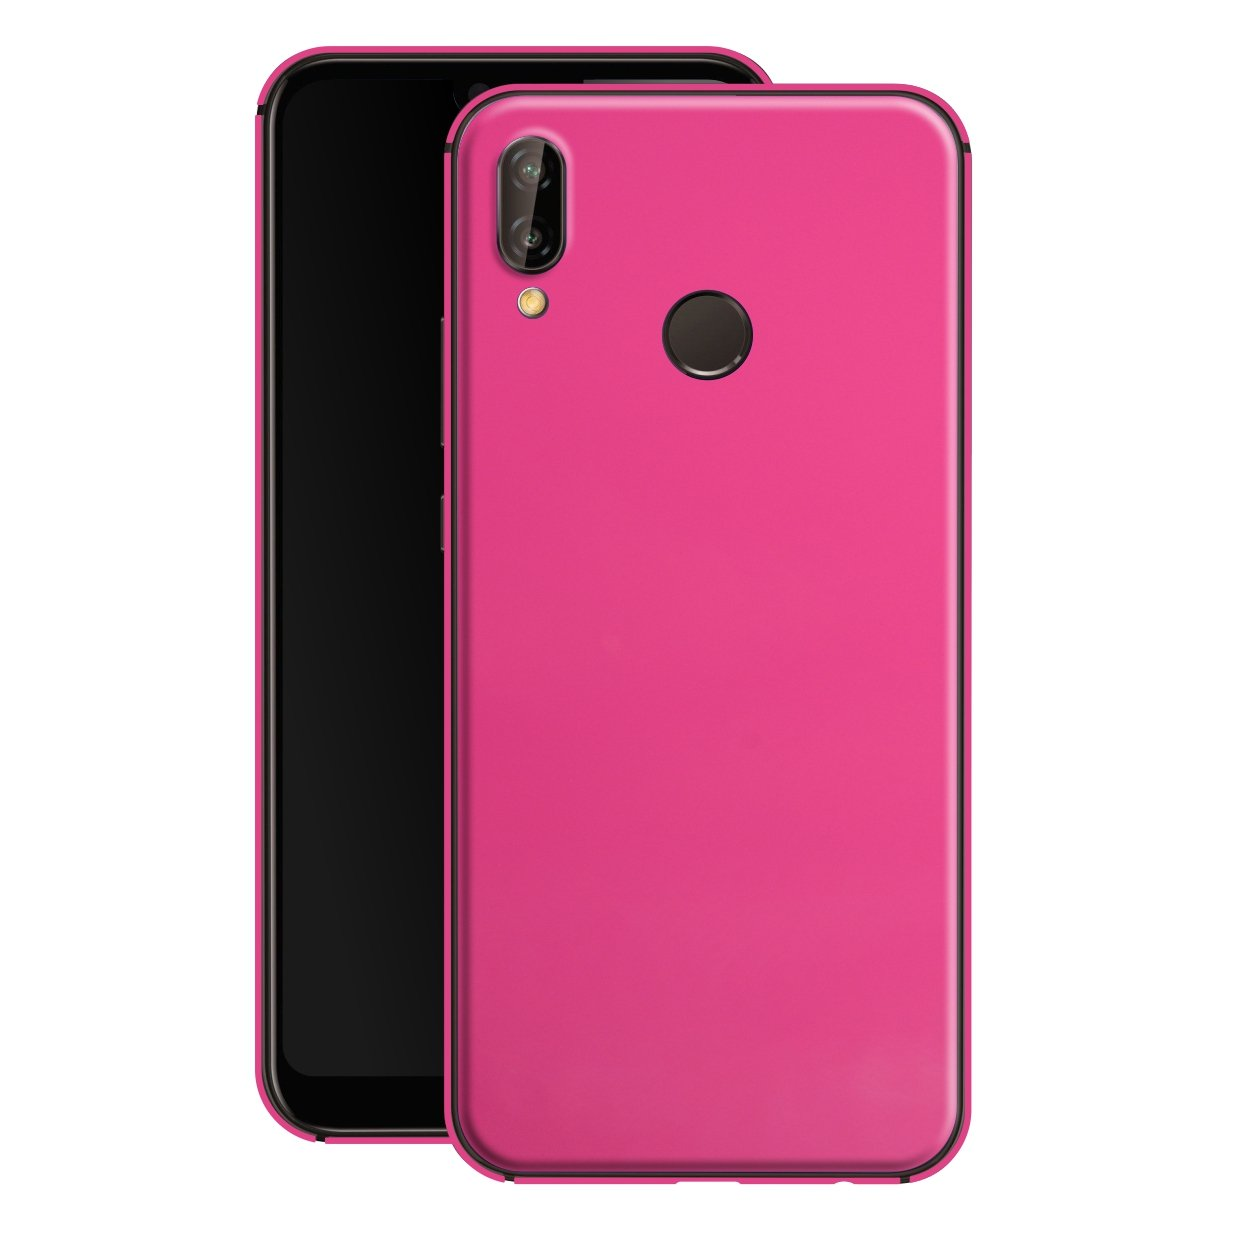 Huawei P20 LITE Glossy Gloss Magenta Finish Skin, Decal, Wrap, Protector, Cover by EasySkinz | EasySkinz.com